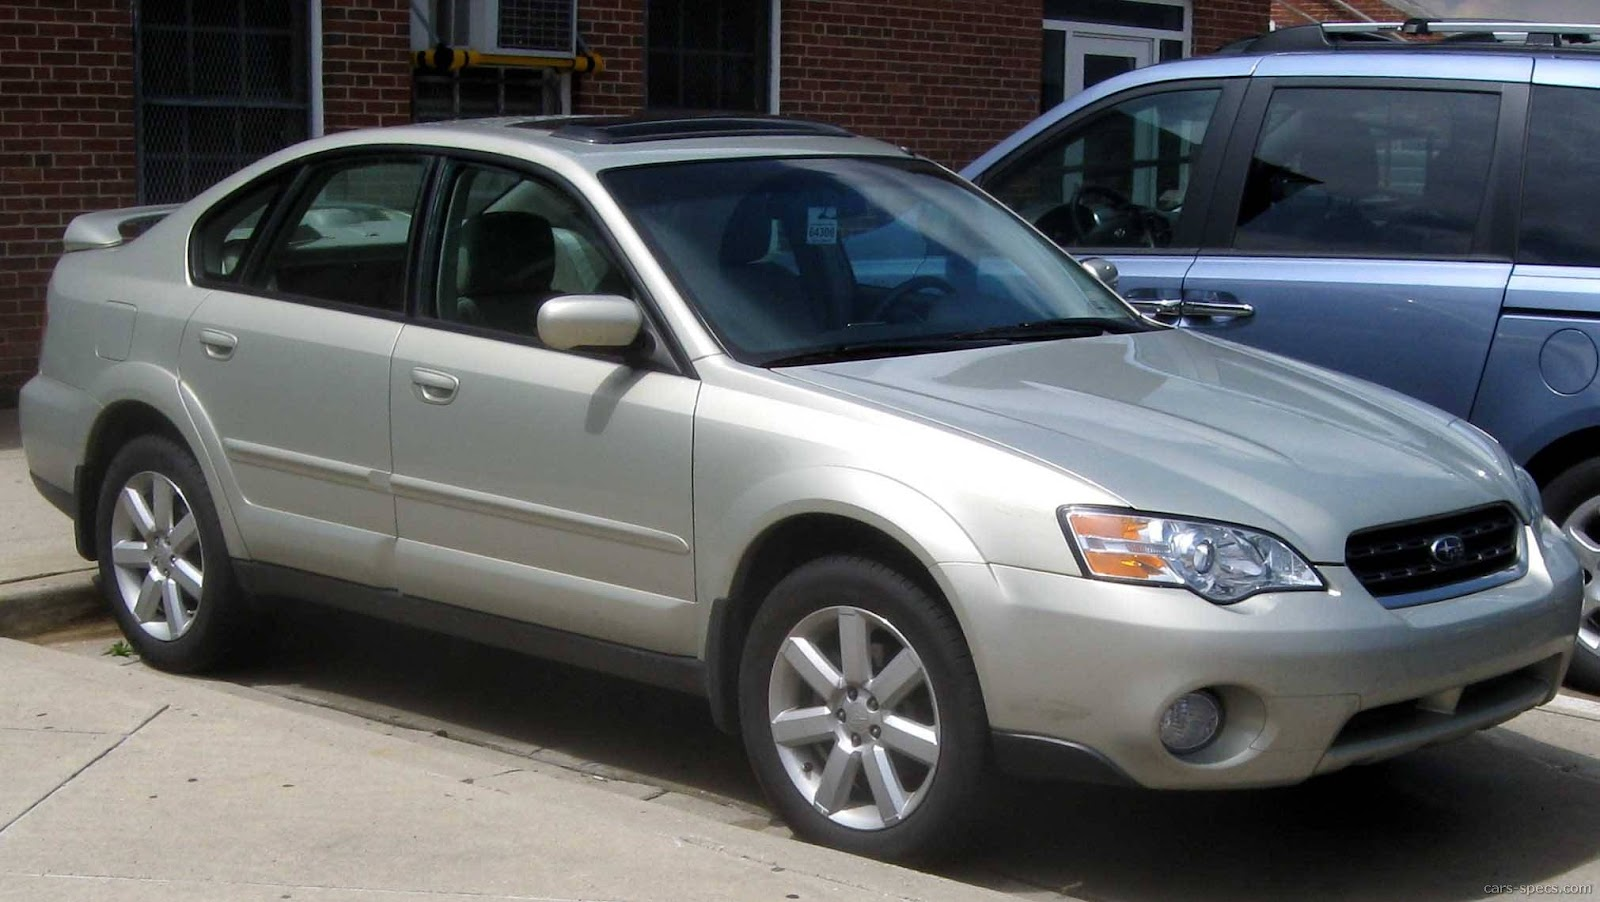 2006 subaru legacy sedan images hd cars wallpaper 2007 subaru legacy sedan gallery hd cars wallpaper 2007 subaru outback sedan specifications pictures prices 2007 vanachro Image collections